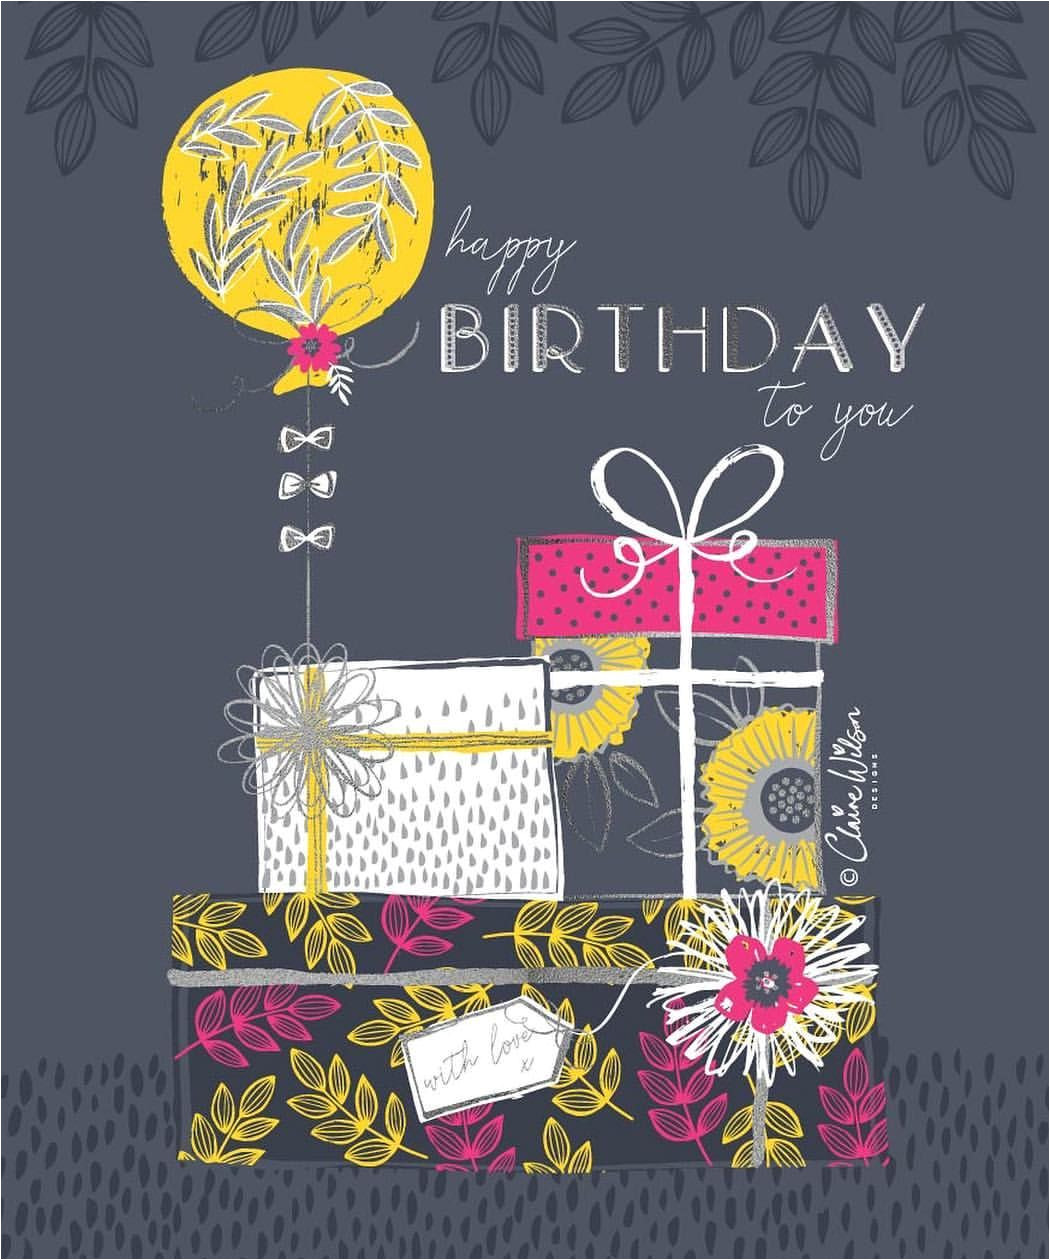 Happy Birthday Lovely Lady Card Dropping by to Wish A Lovely Lady A Very Happy Birthday for